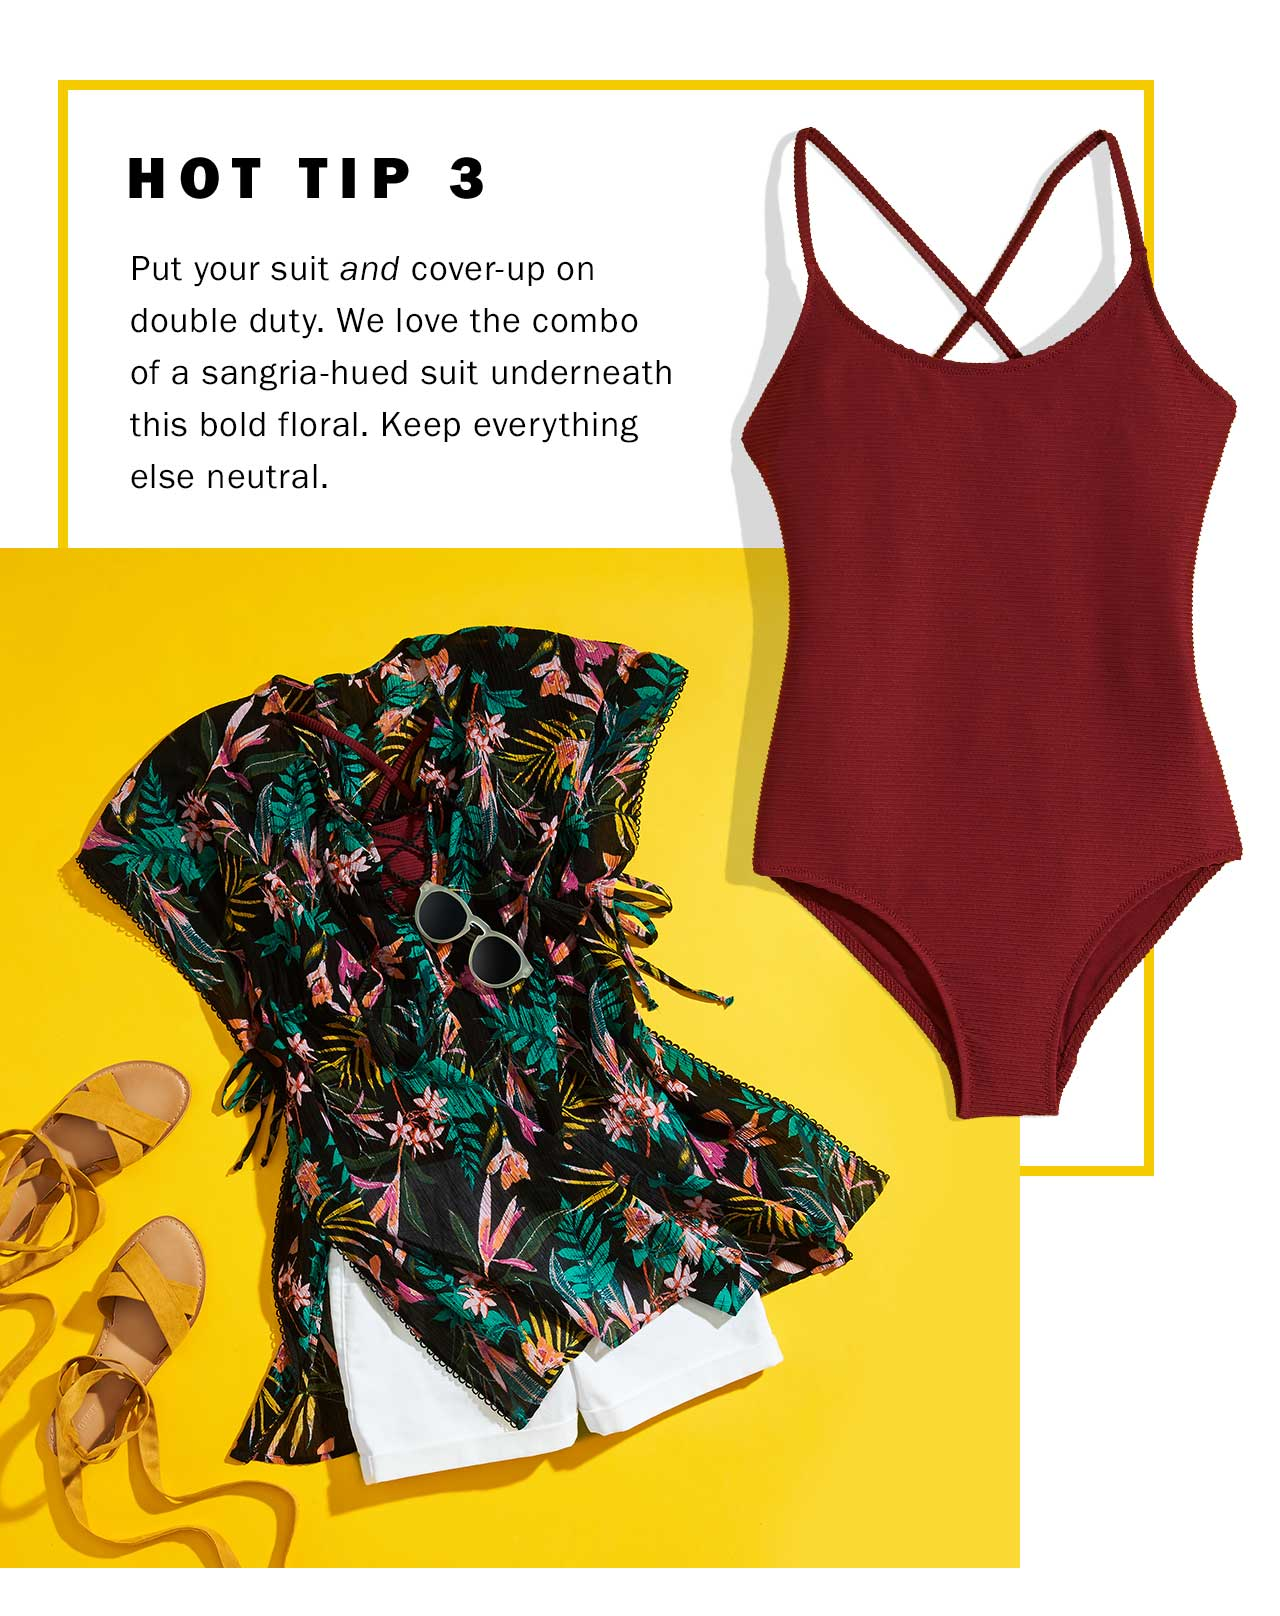 HOT TIP 3 | Put your suit and cover-up on double duty. We love the combo of a sangria-hued suit underneath this bold floral. Keep everything else neutral.